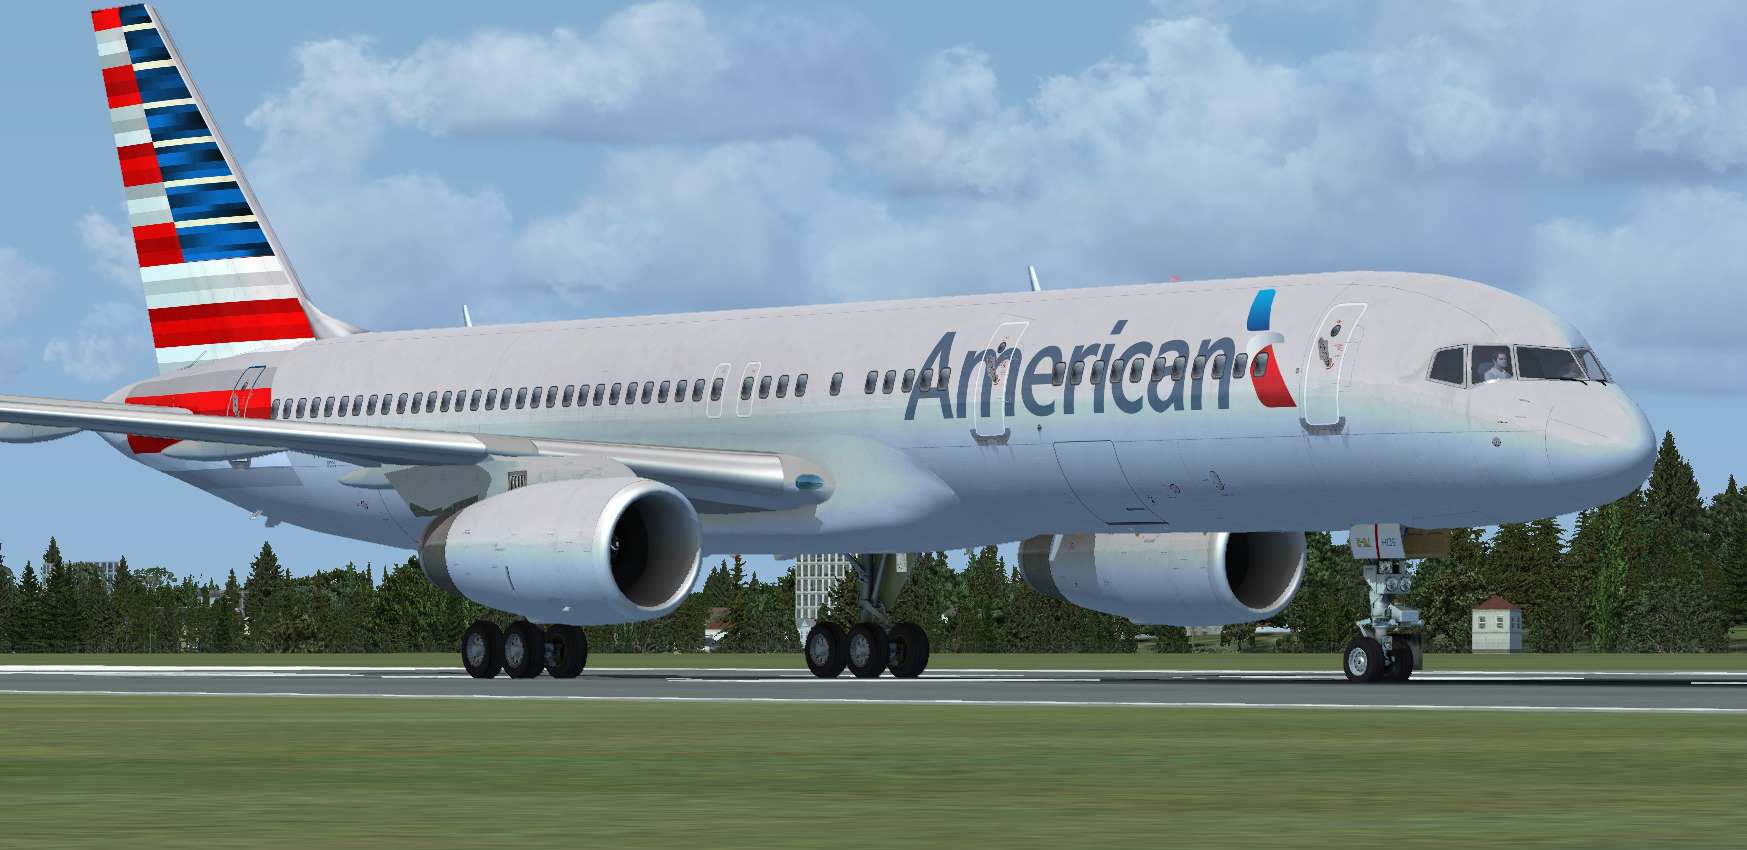 fsx download free